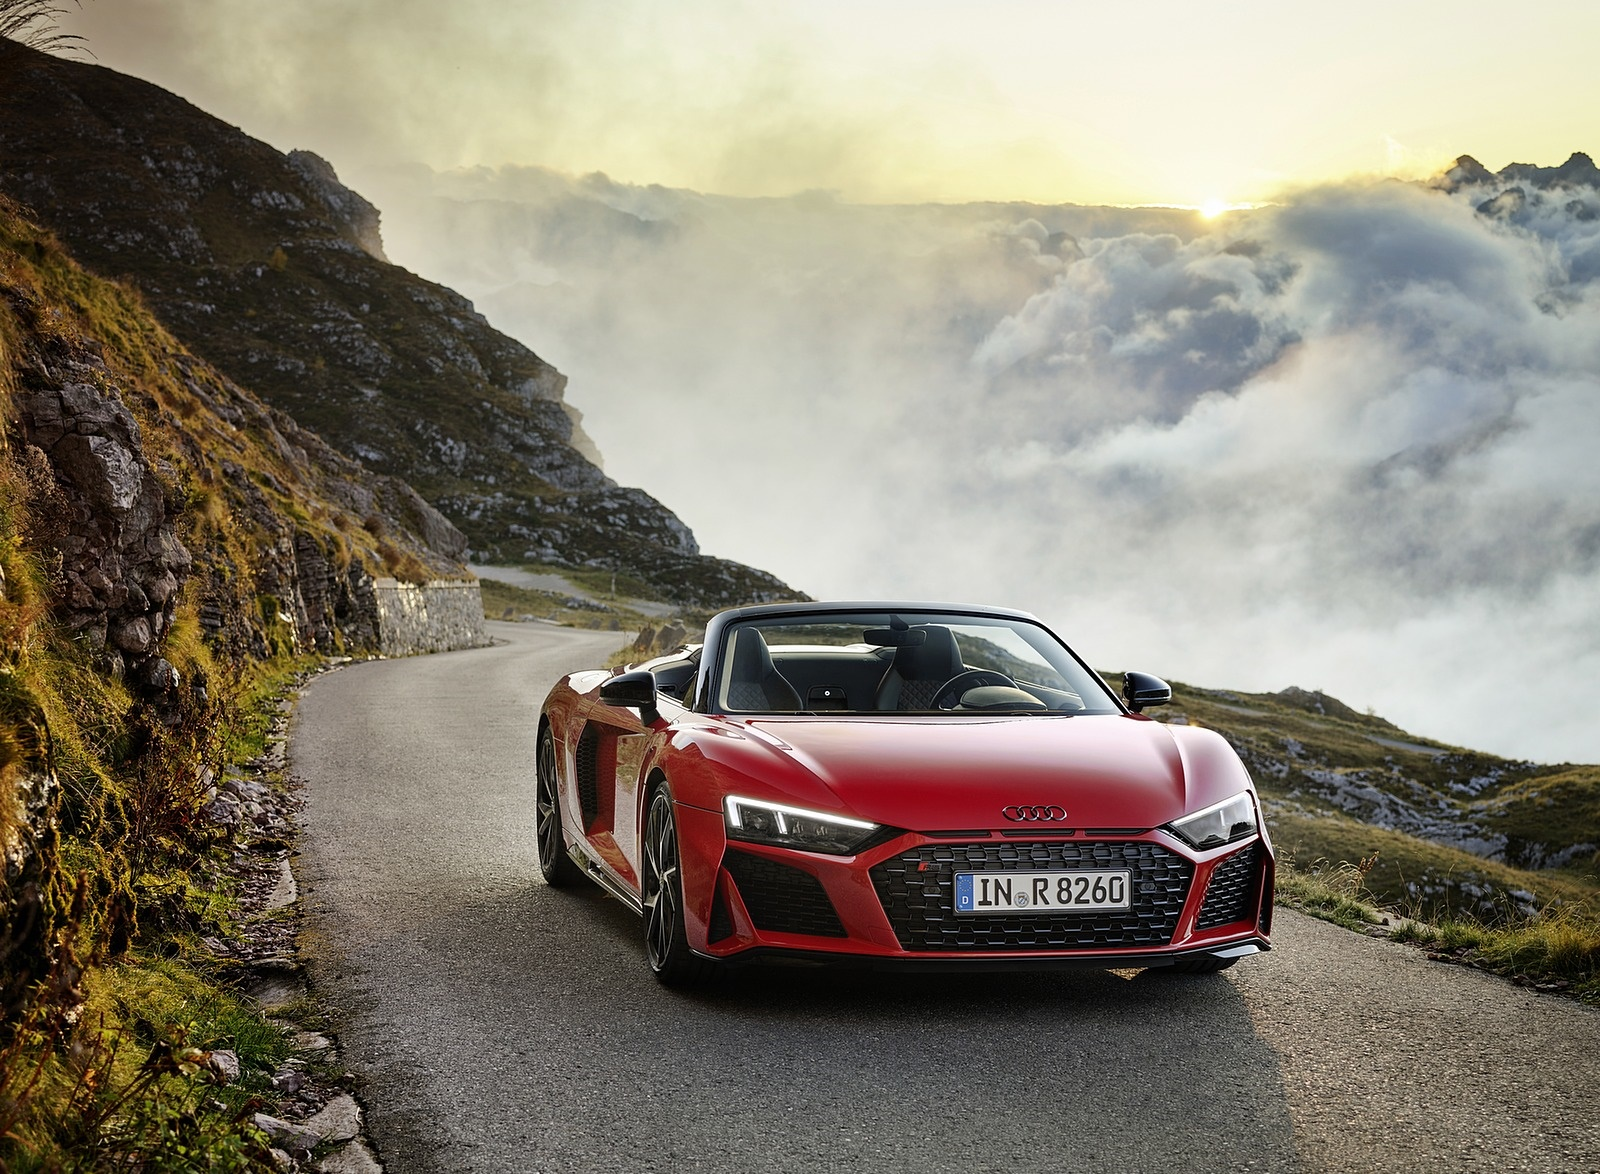 2020 Audi R8 V10 RWD Spyder (Color: Tango Red) Front Wallpapers (7)